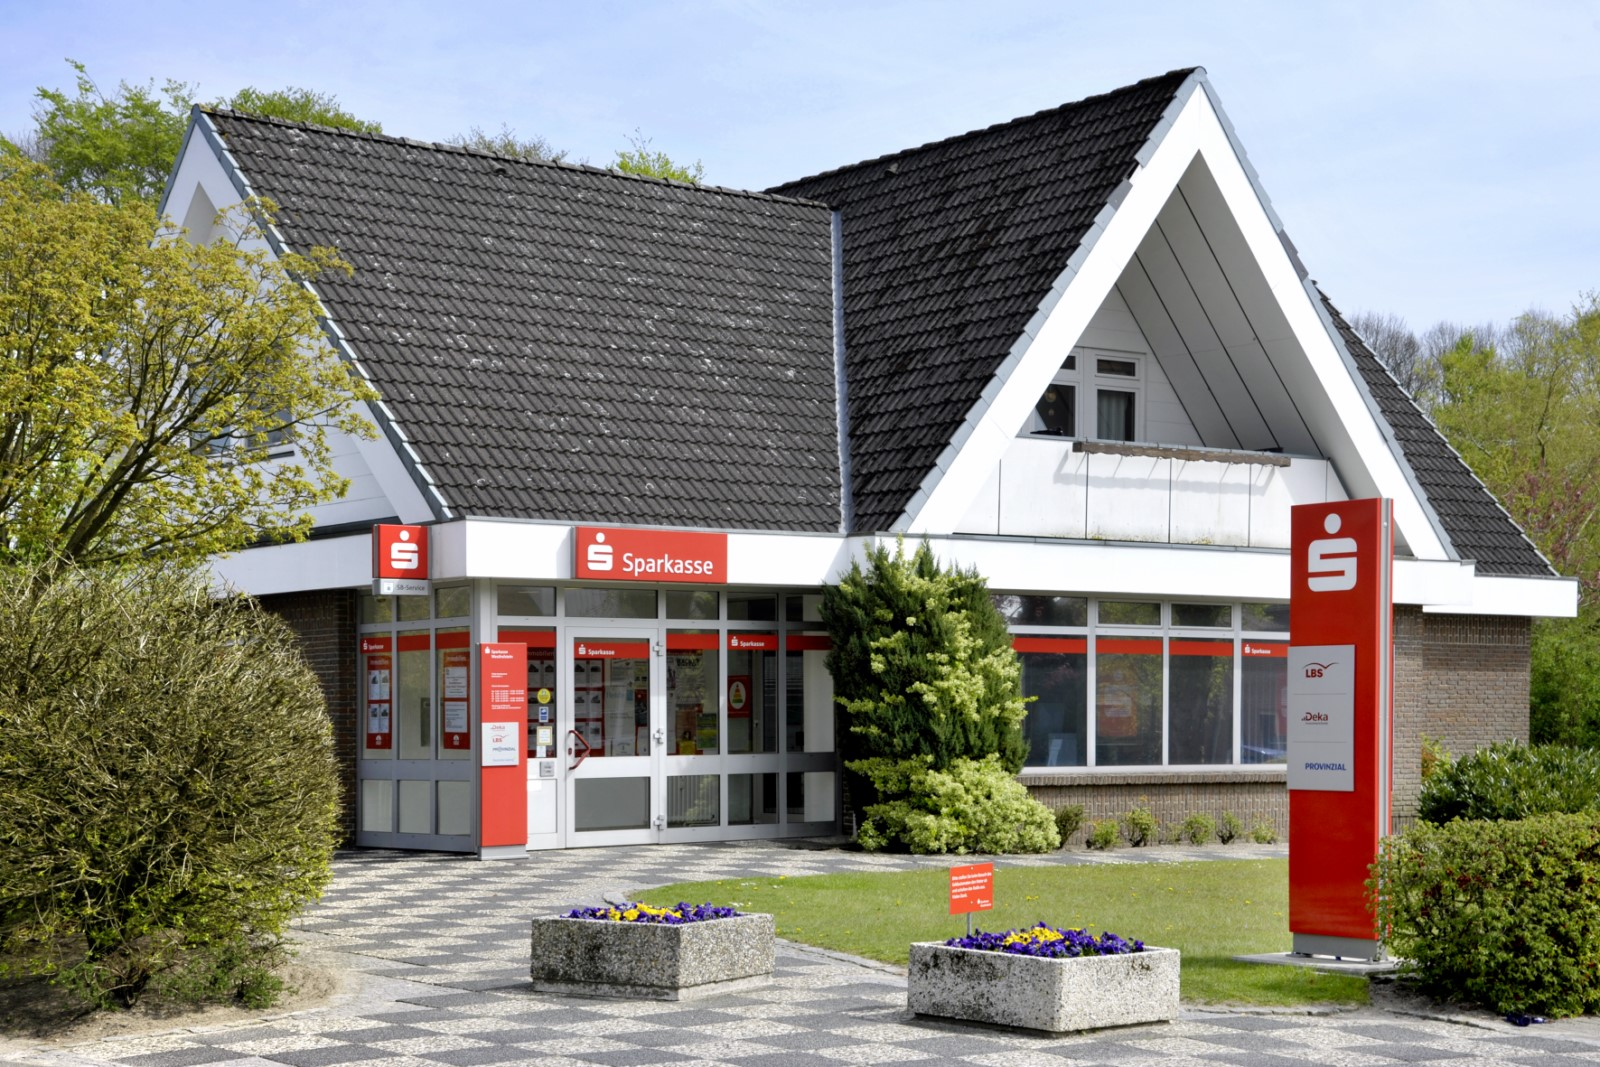 Sparkasse SB-Center Nordhastedt